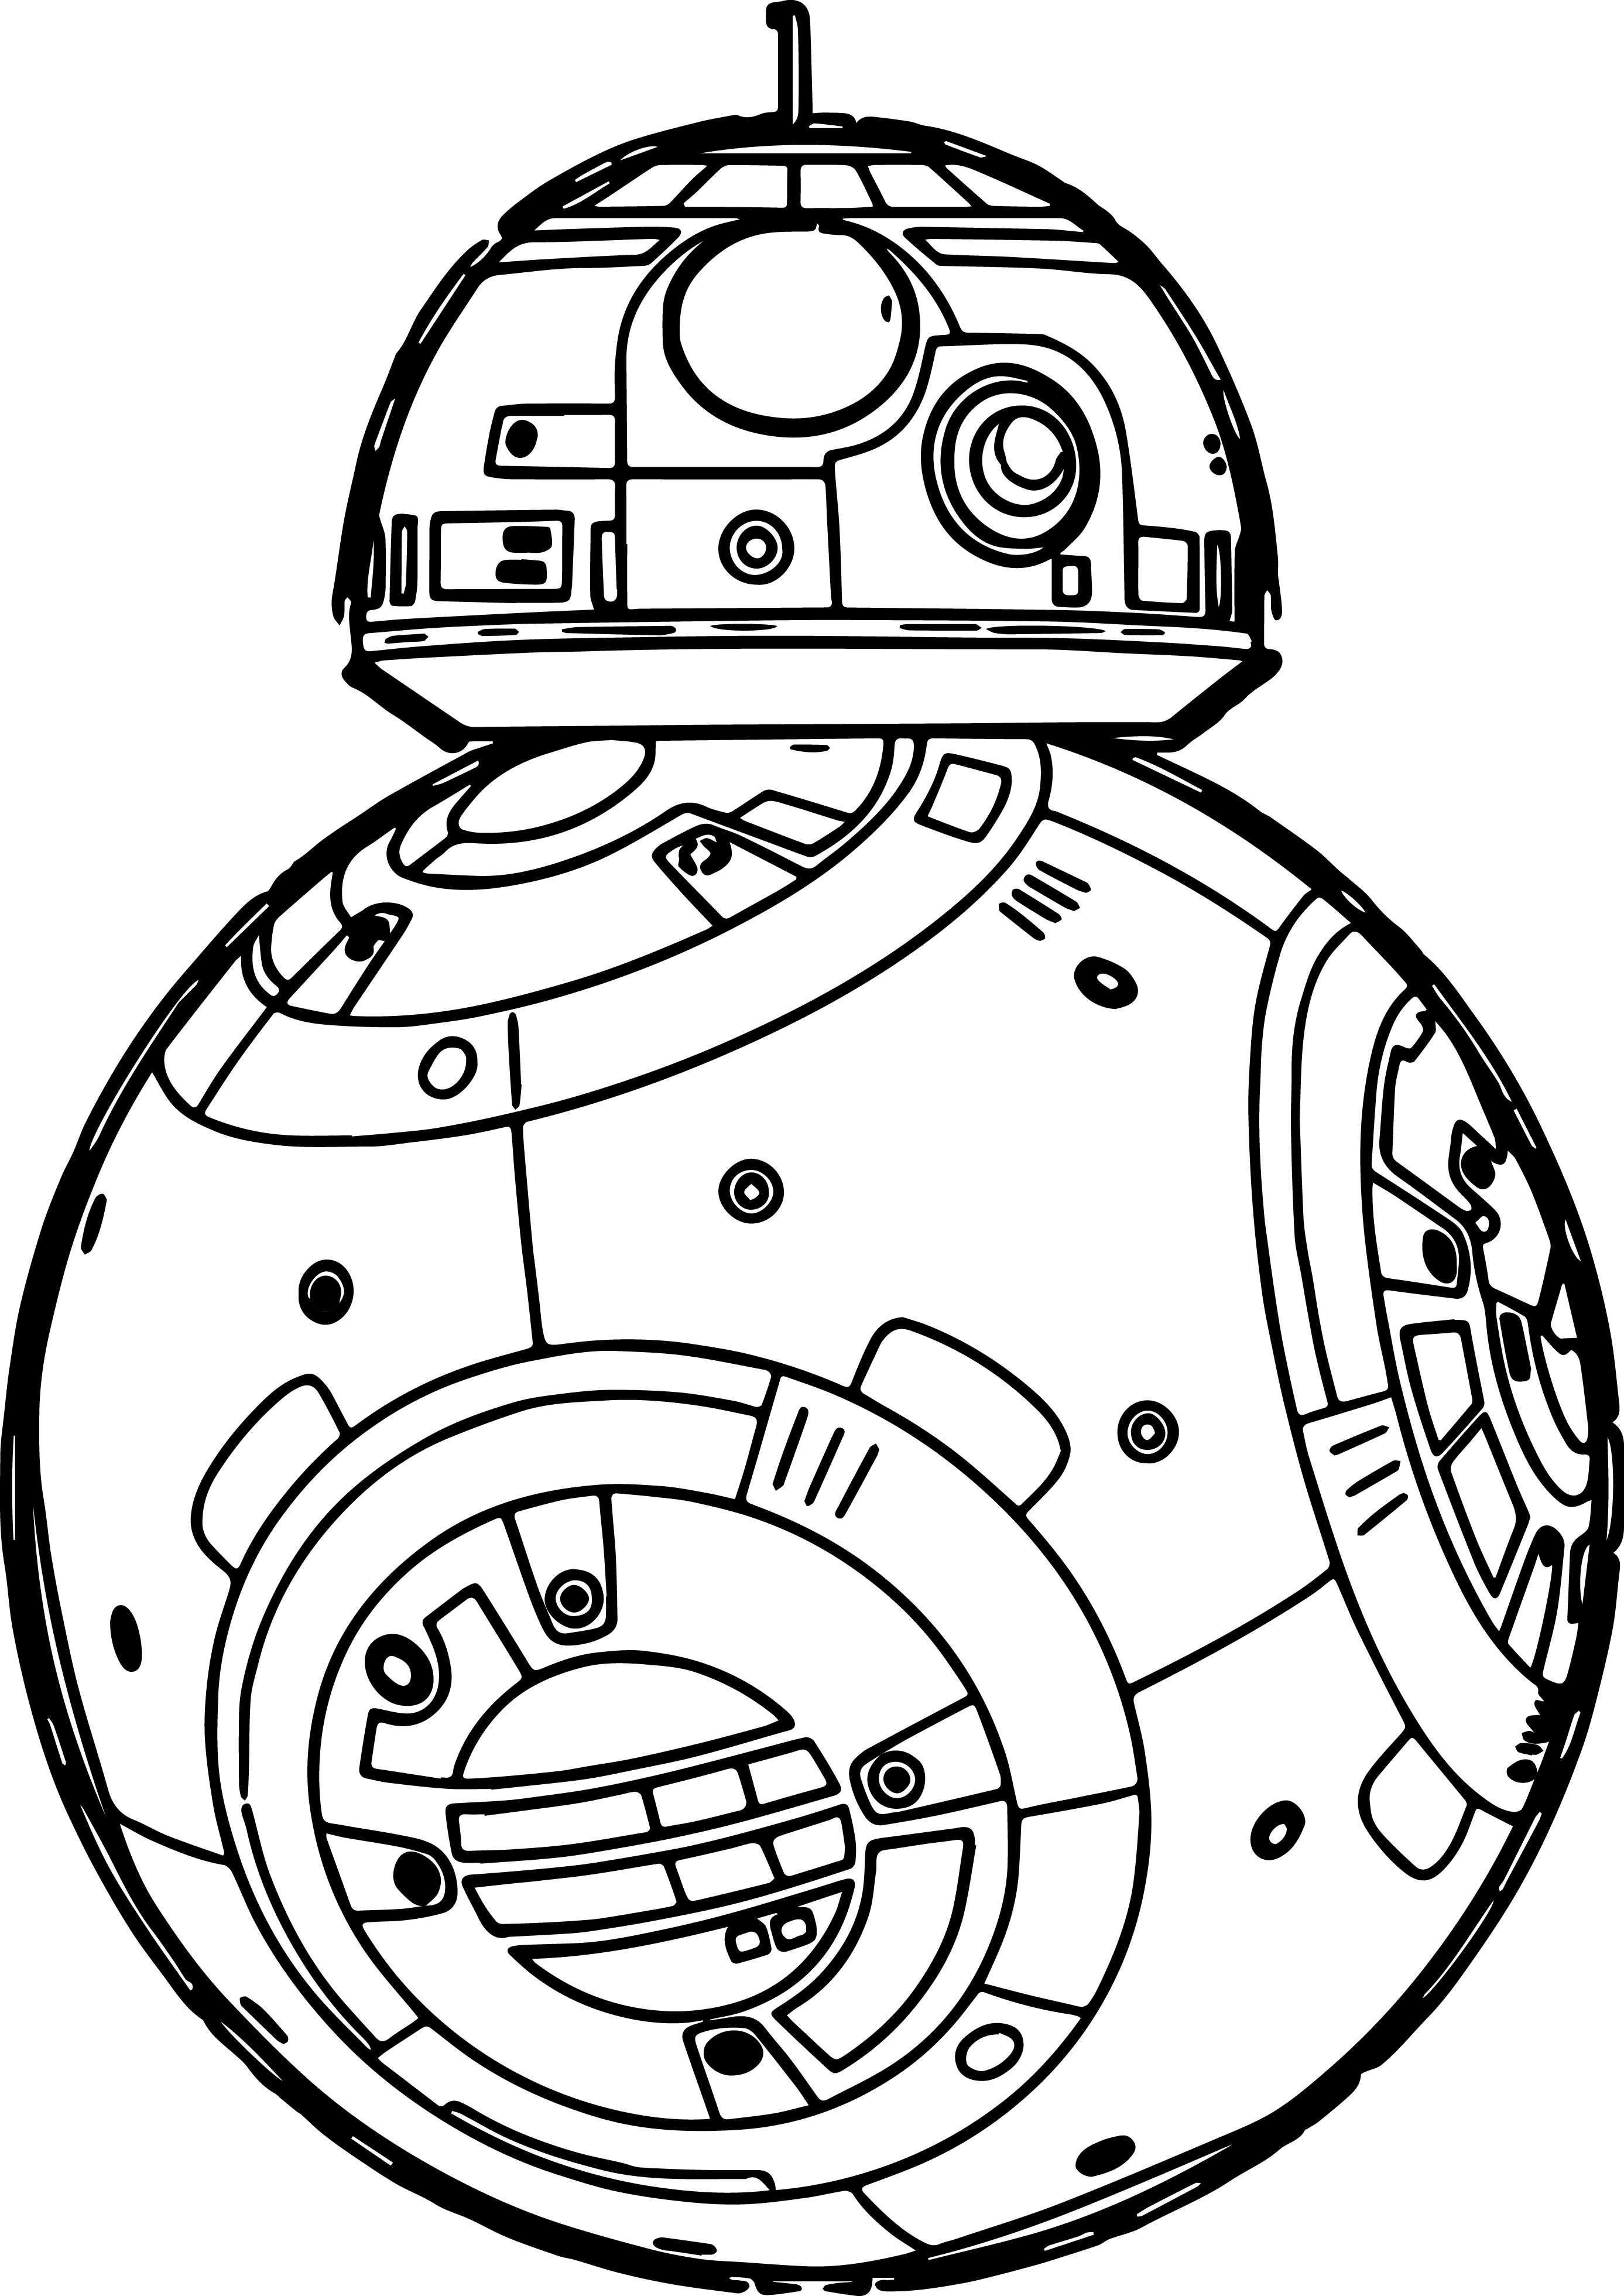 Star Wars Coloring Pages | Free download best Star Wars Coloring ...